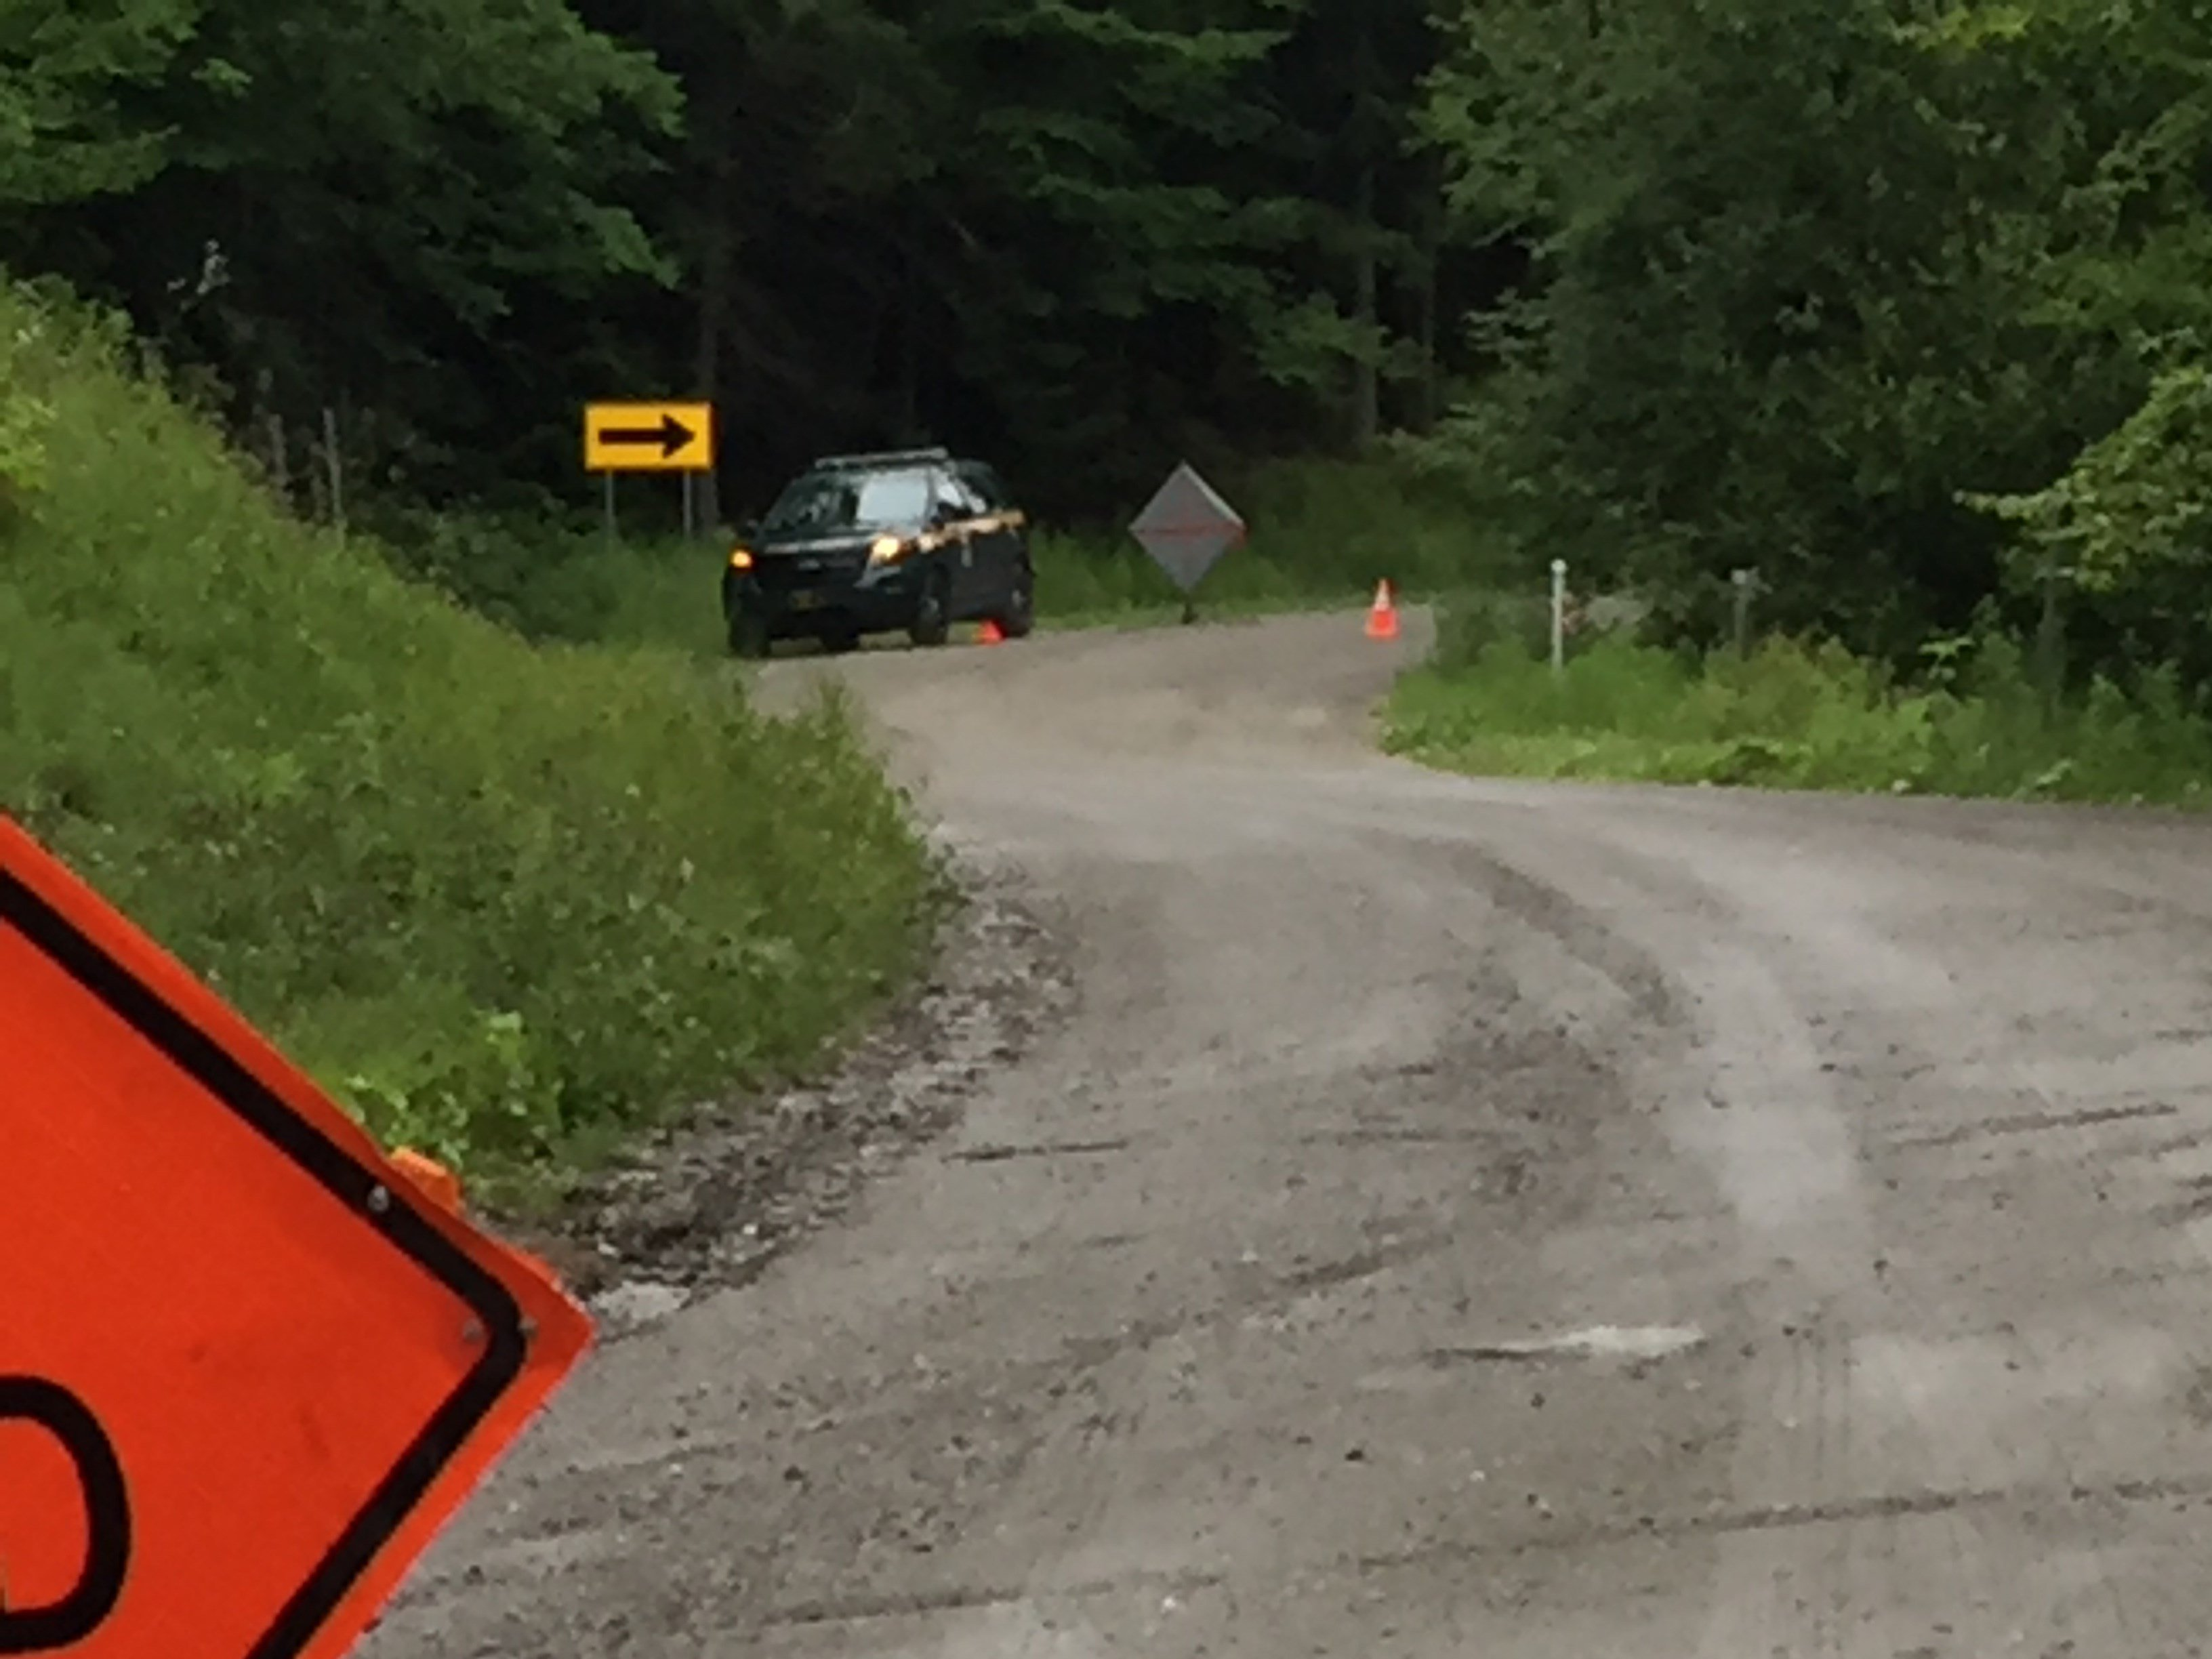 Woman's body found in ditch along secluded Vermont road